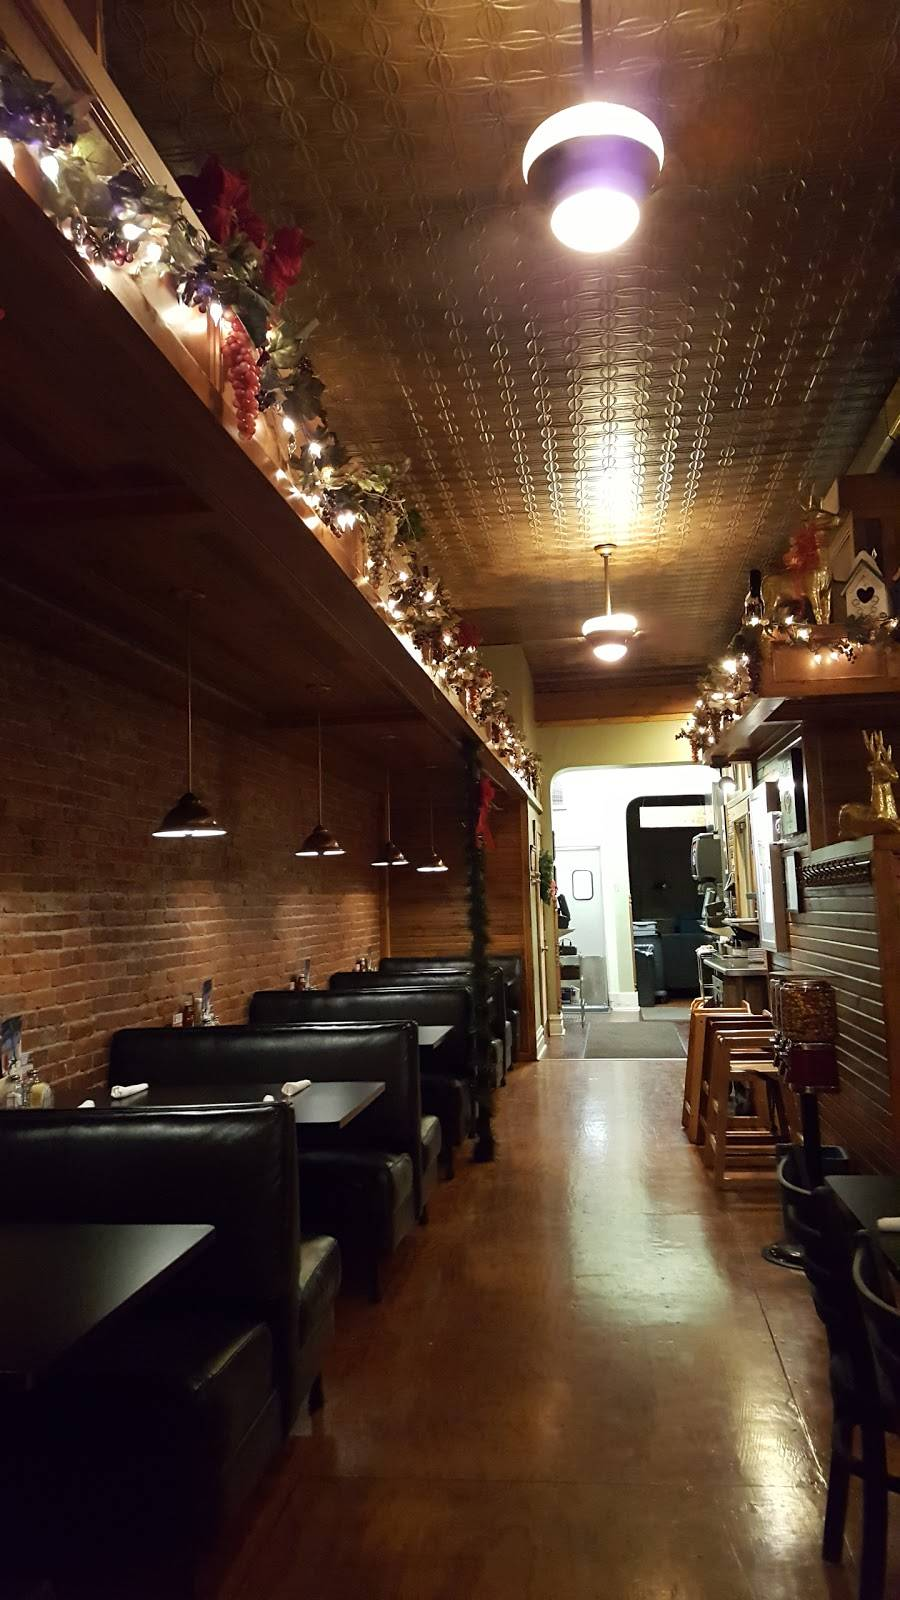 The LuBar and Bistro | restaurant | 911 Fairfax St, Carlyle, IL 62231, USA | 6185946333 OR +1 618-594-6333